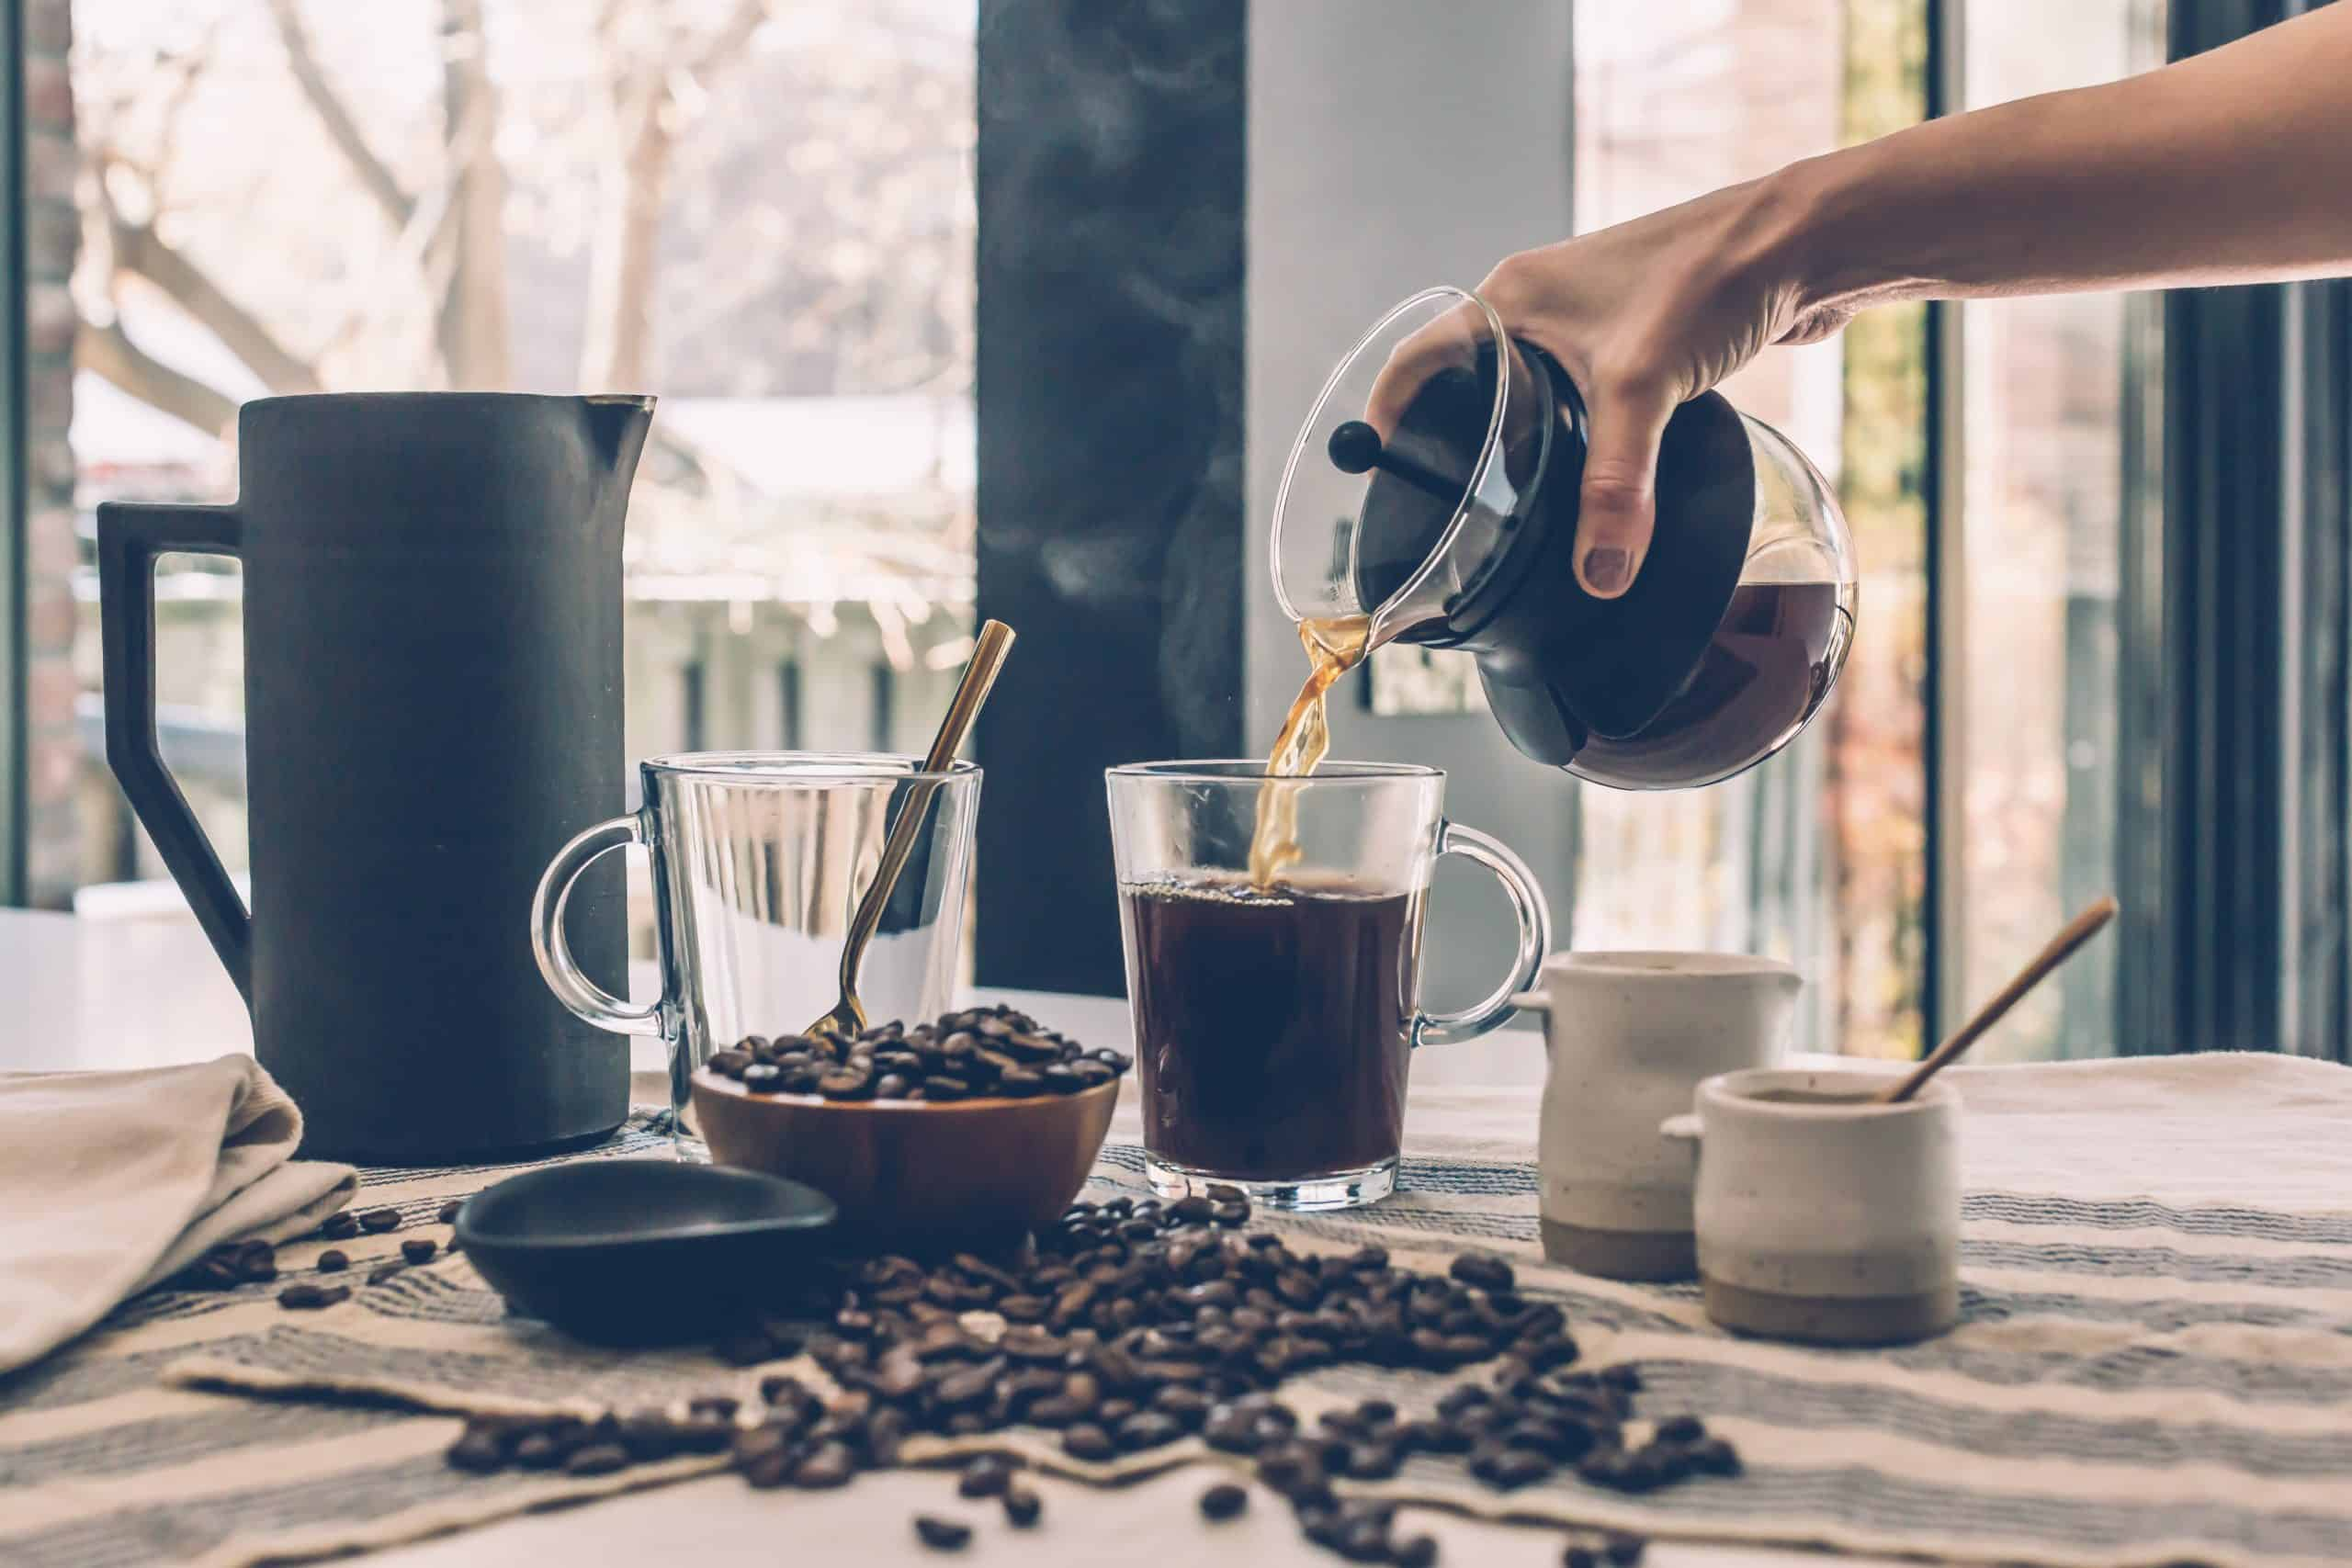 Things To Look For When Buying Coffee Makers